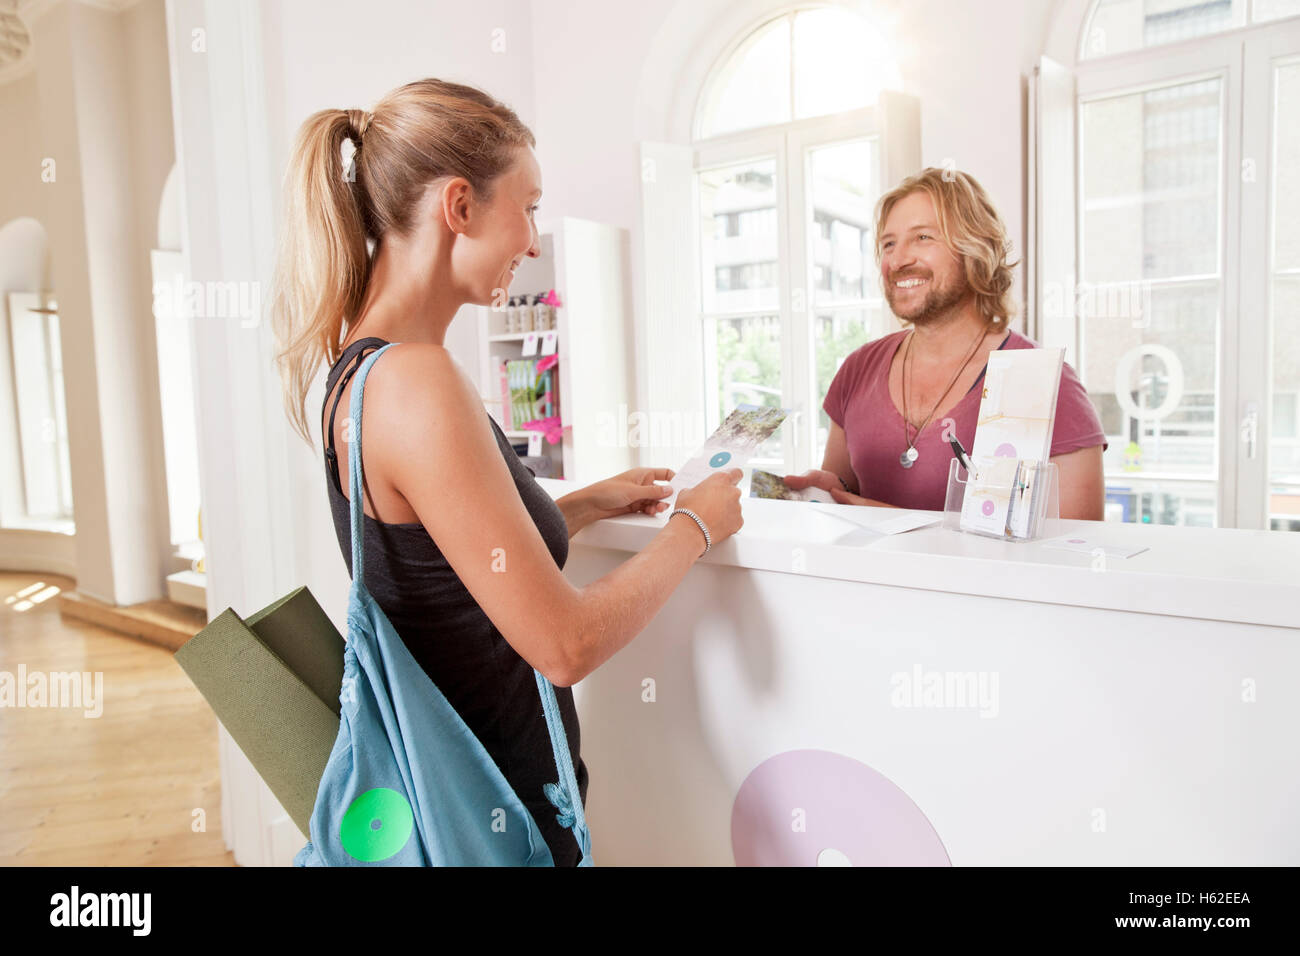 Woman at yoga studio counter informing about classes - Stock Image